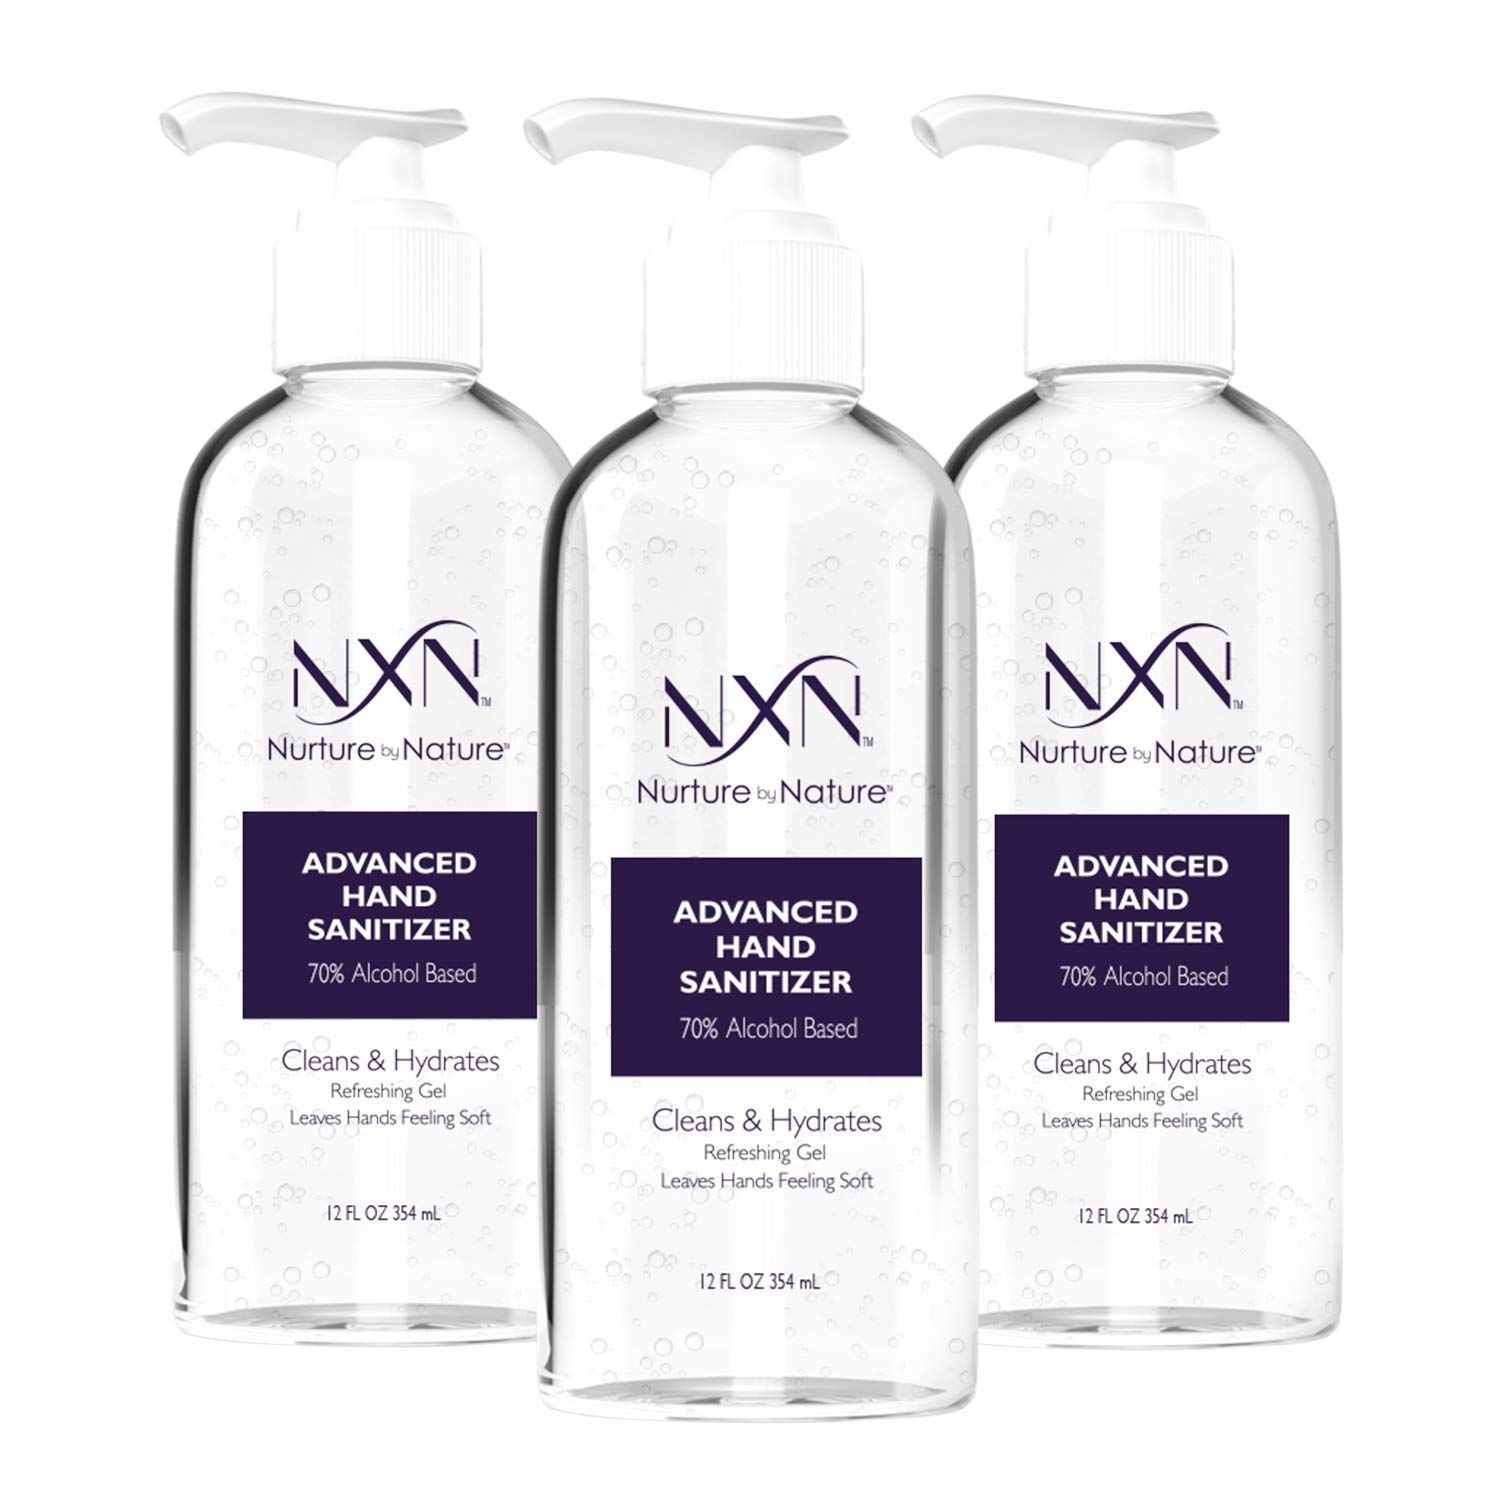 Nxn Beauty Advanced Hand Sanitizer Refreshing Gel With 70 Alcohol 12 Oz 354ml Each Pack Of 3 In 2020 Hand Sanitizer Gel Alcohol